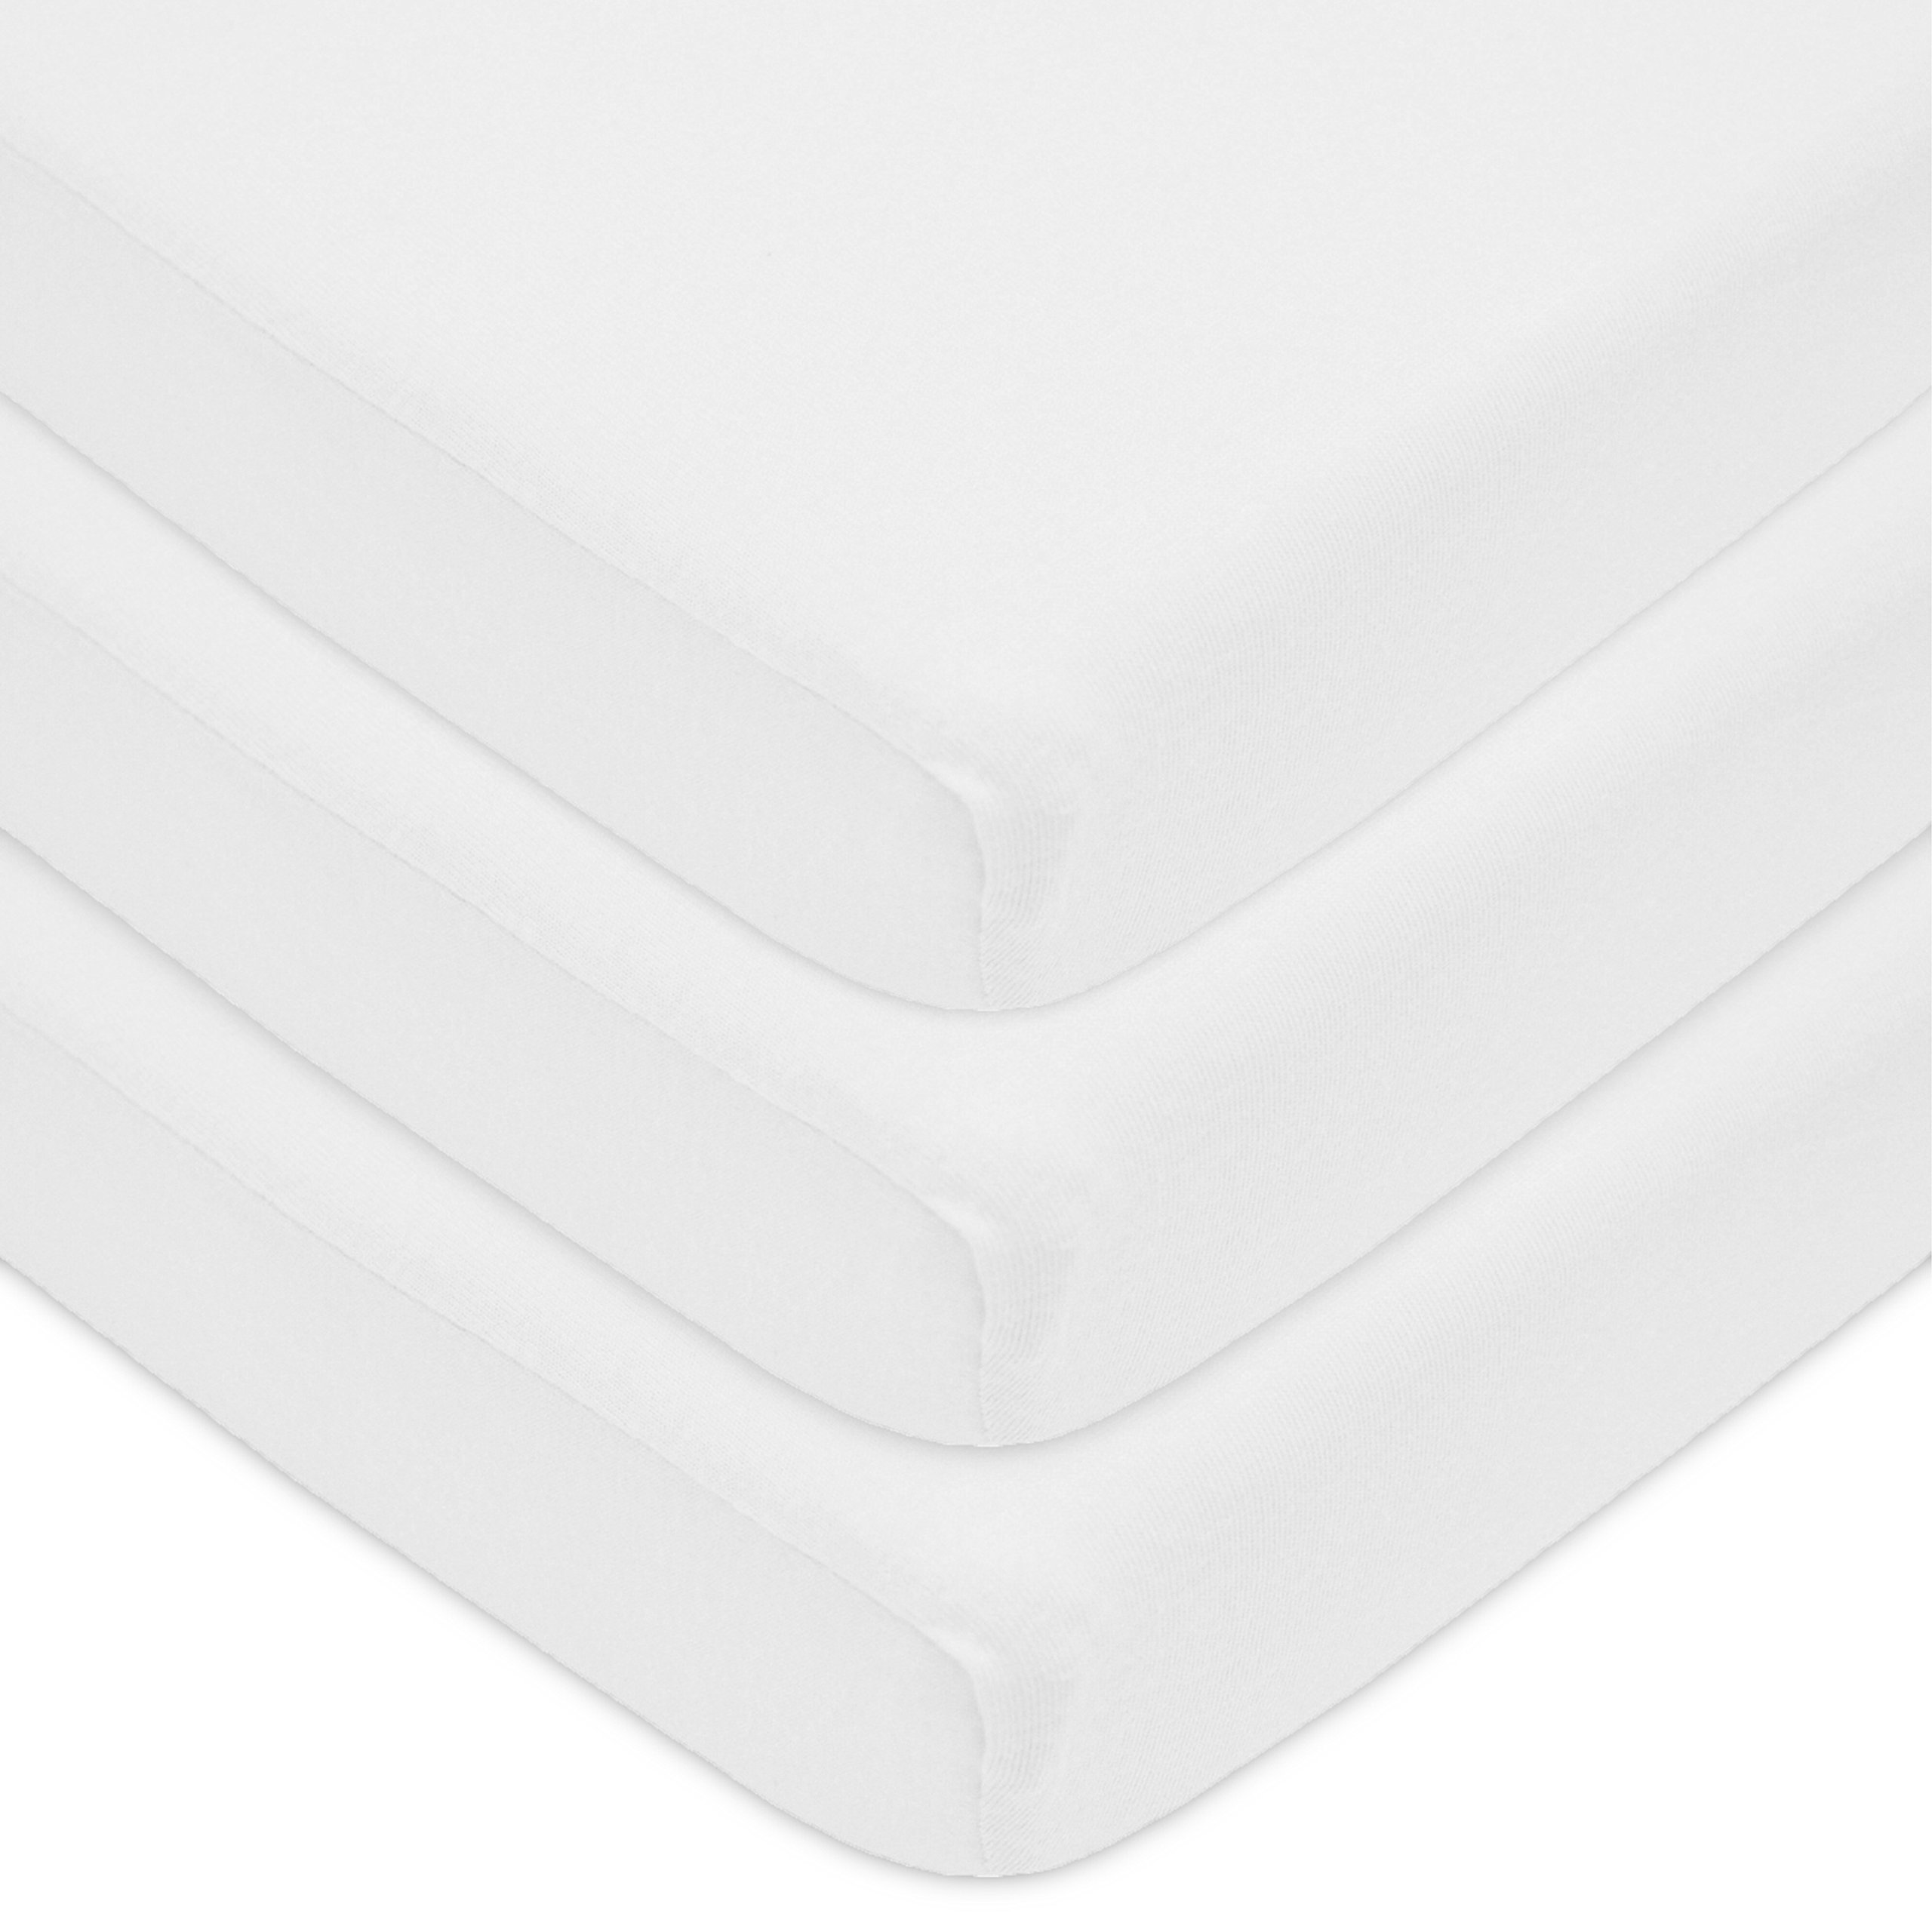 American Baby Company 3 Pack 100% Natural Cotton Jersey Knit Fitted Pack N Play Playard Sheet, White, Soft Breathable, for Boys and Girls by American Baby Company